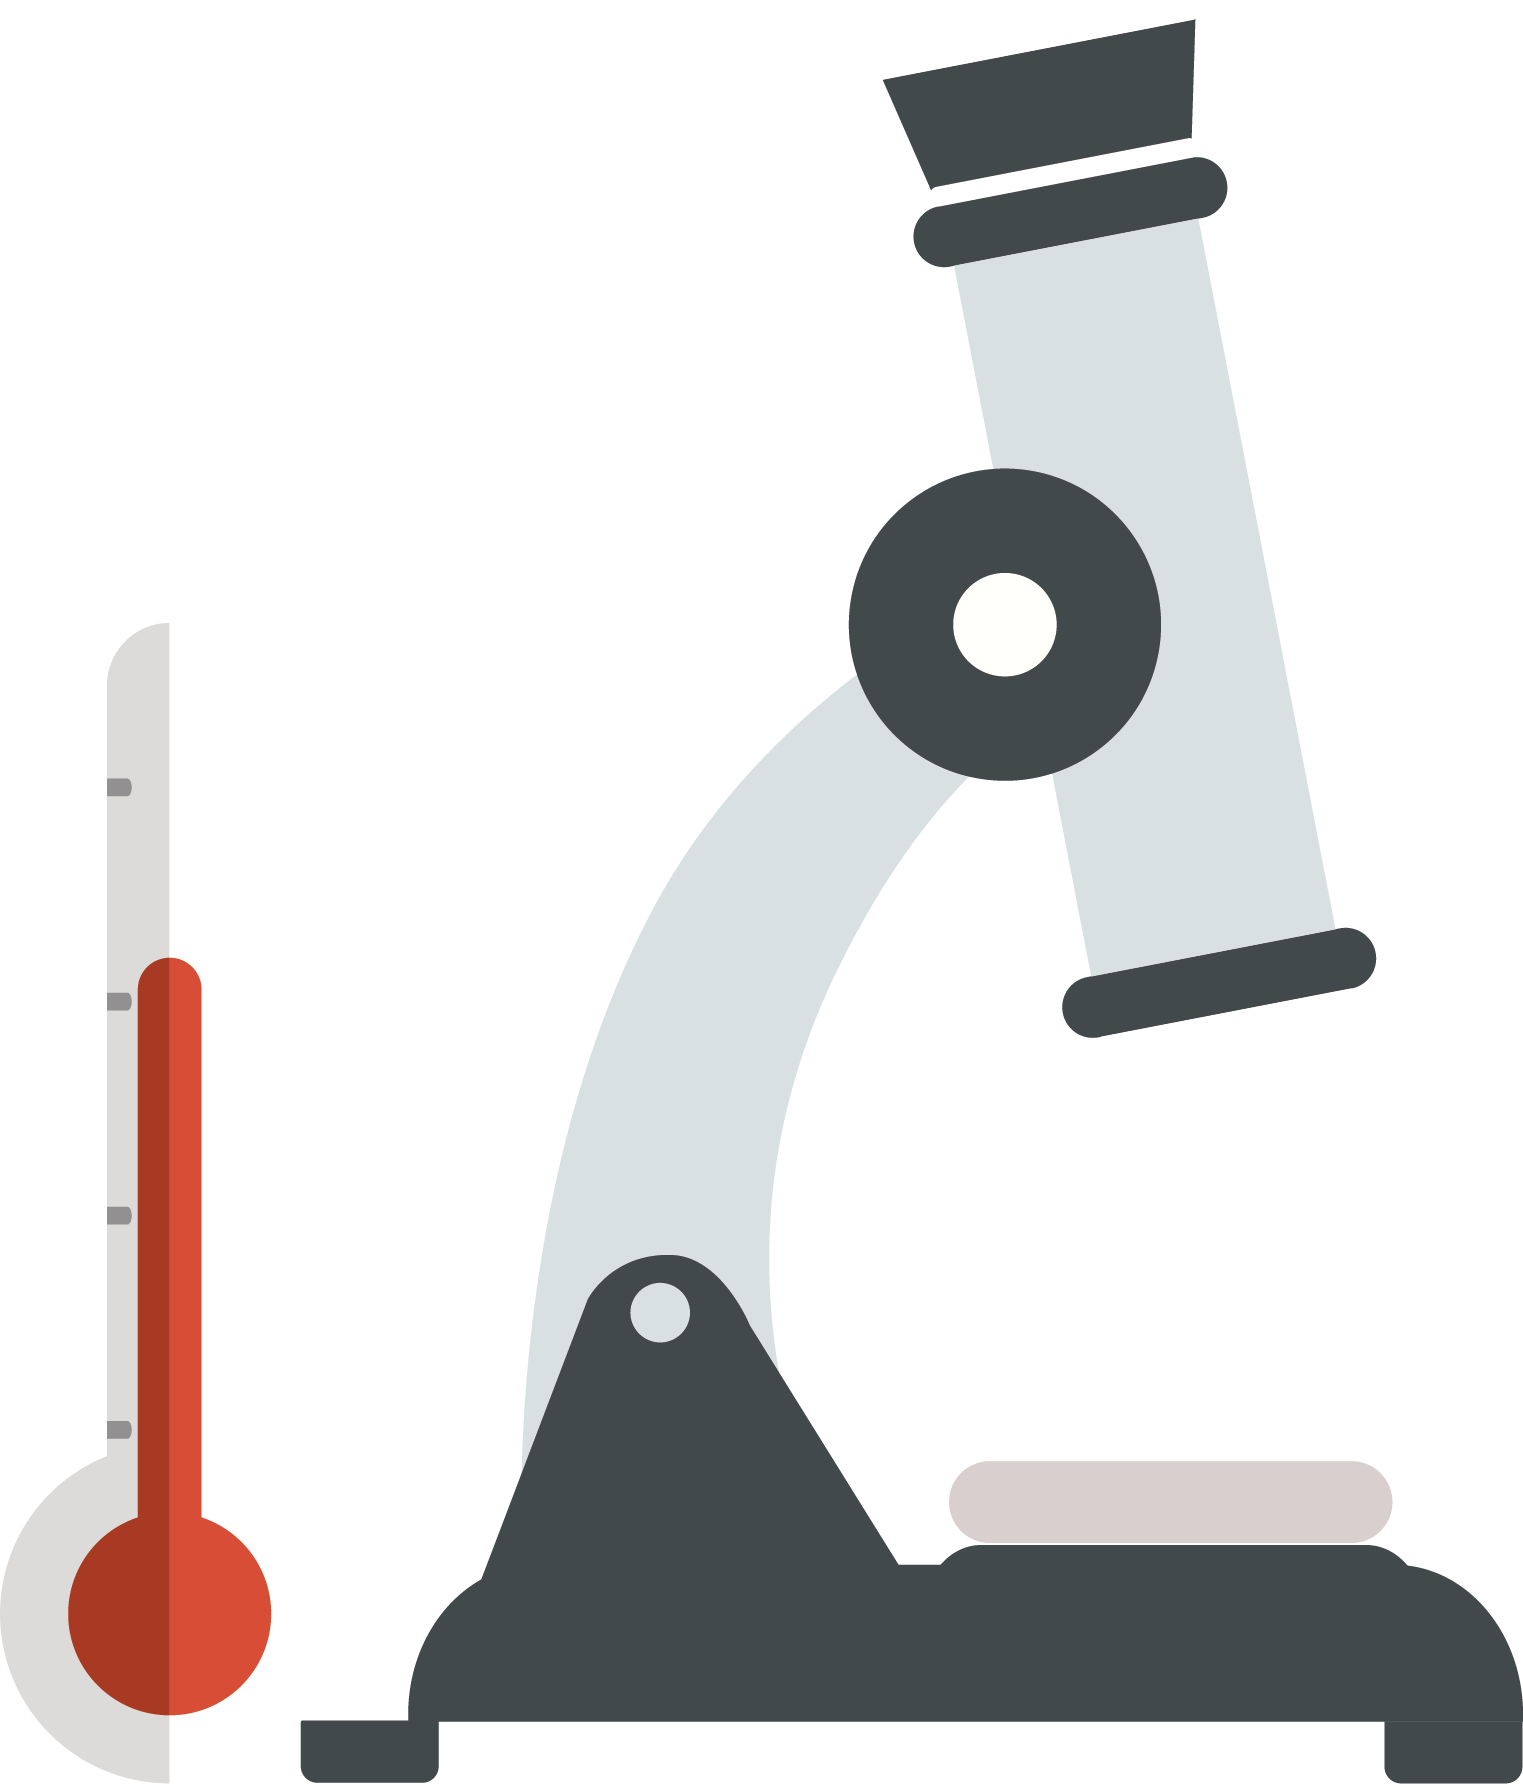 Clipart thermometer laboratory thermometer. Test tube microscope and